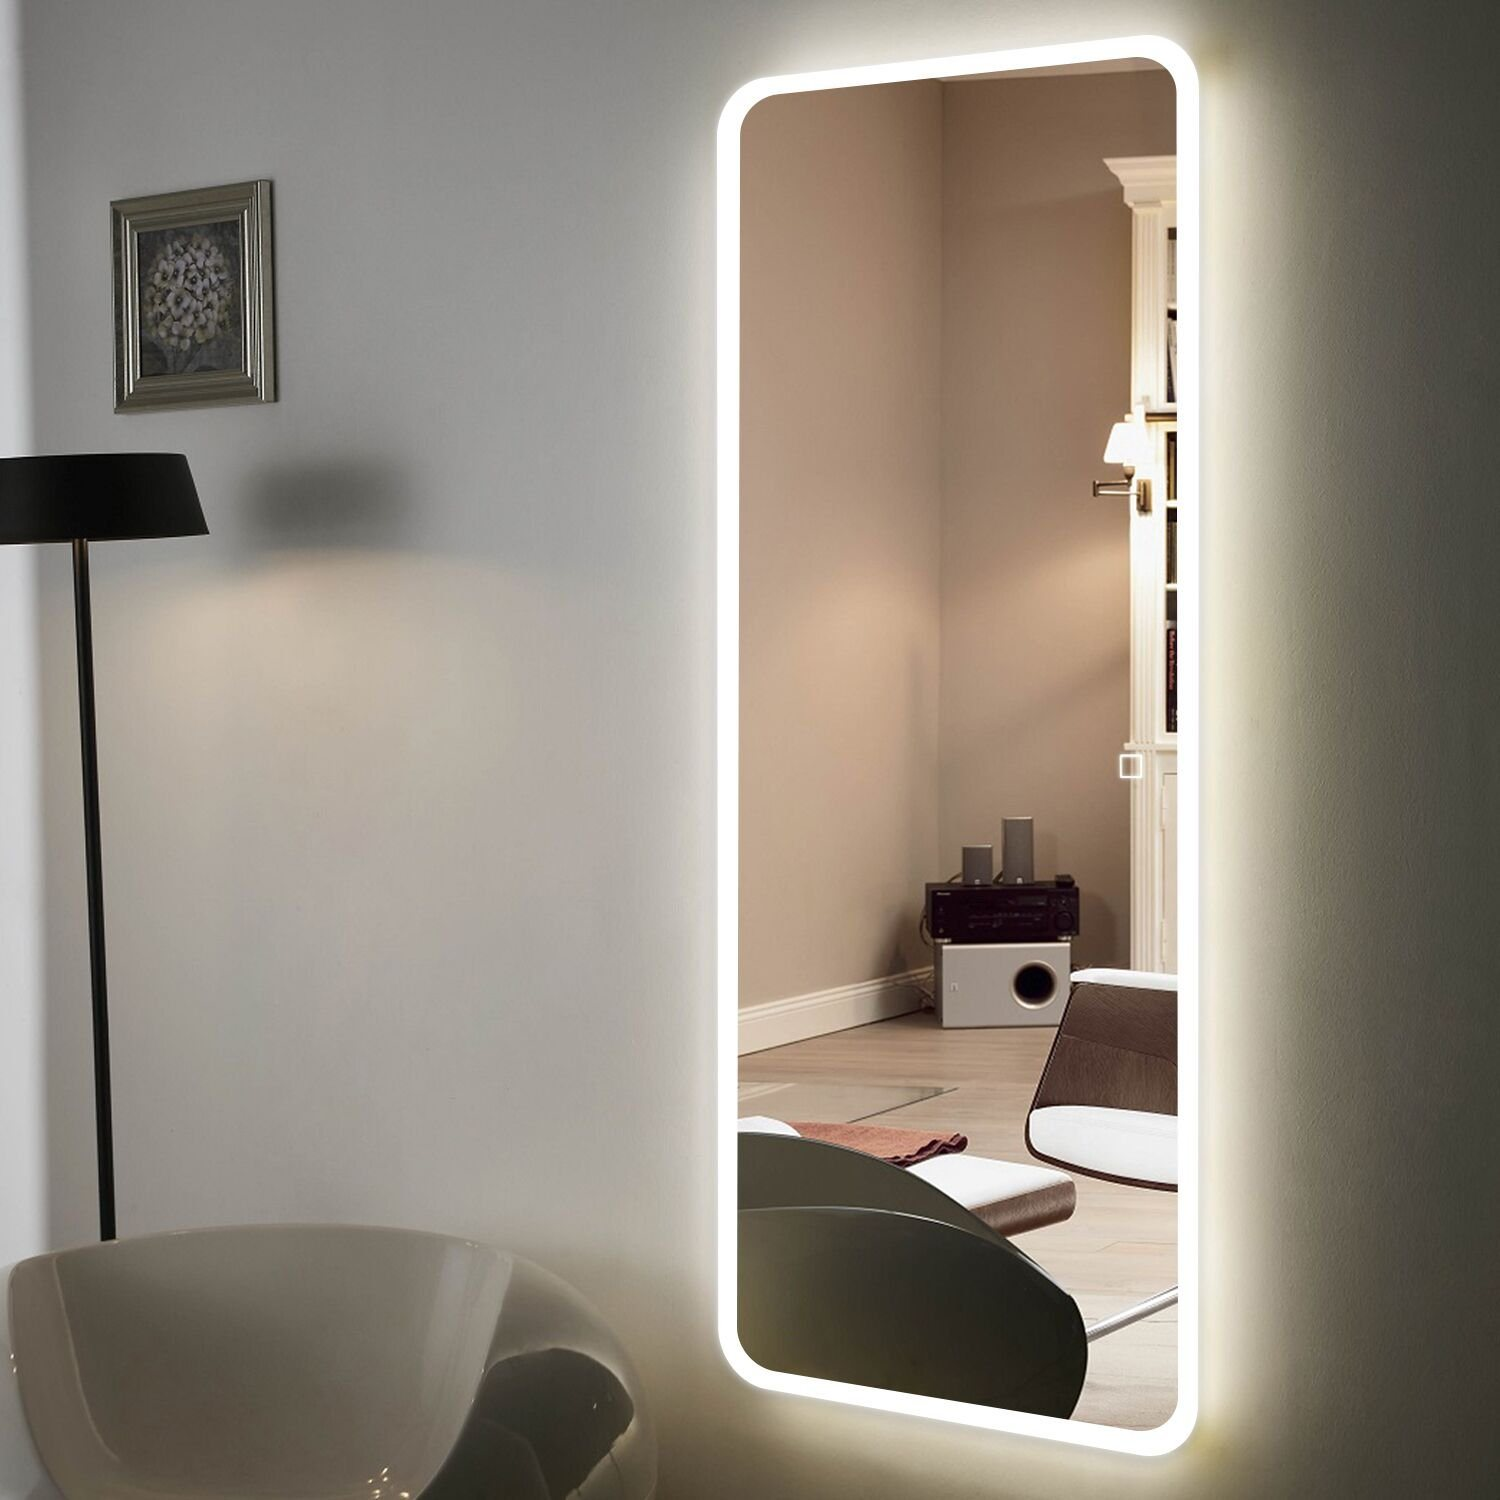 China 5mm 24inx55in Wall Mounted Full Length Bathroom Led Lighted Anti Fog Mirror Photos Pictures Made In China Com